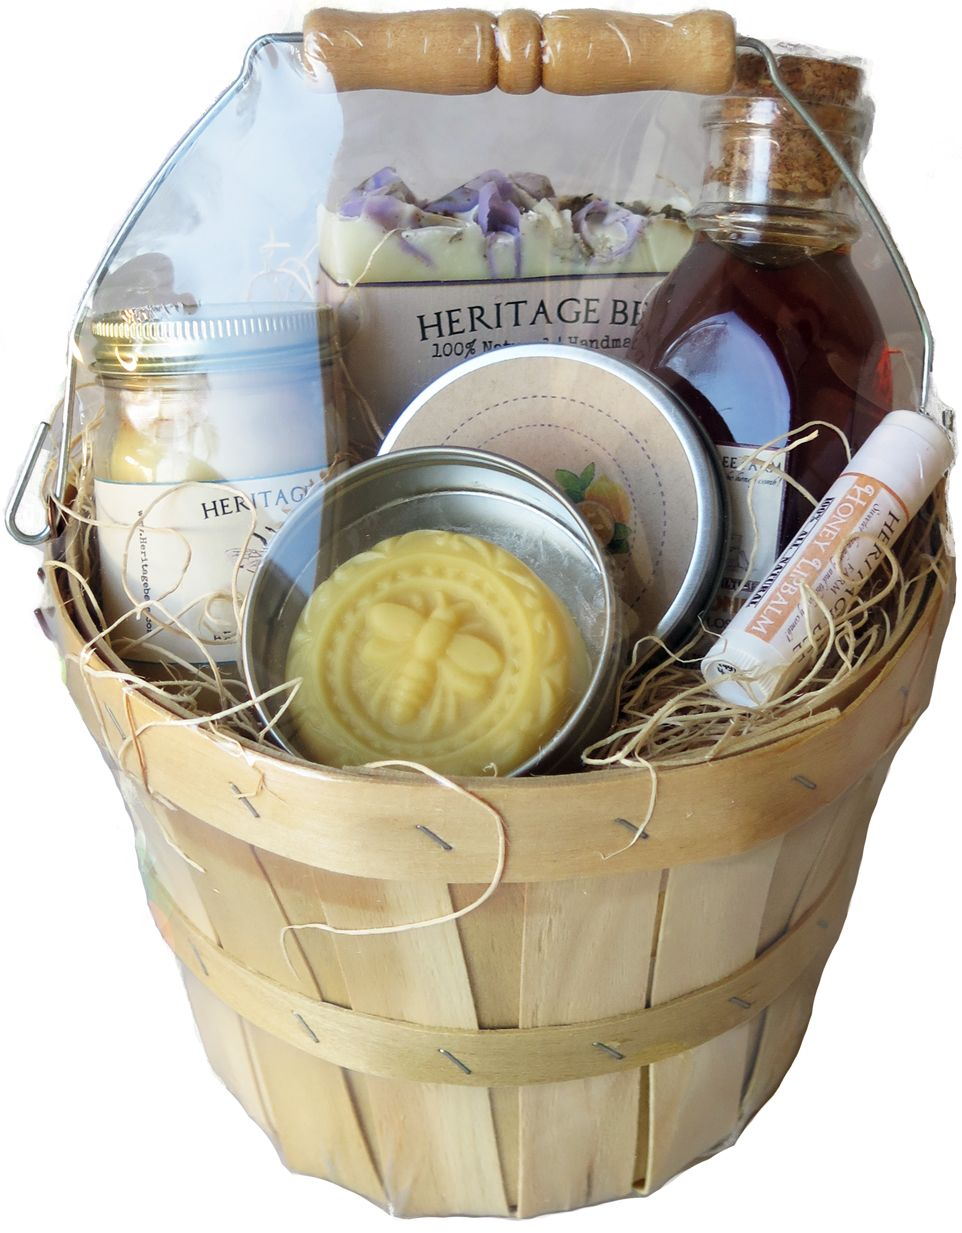 Deluxe honey and hive gift basket raw honey beeswax